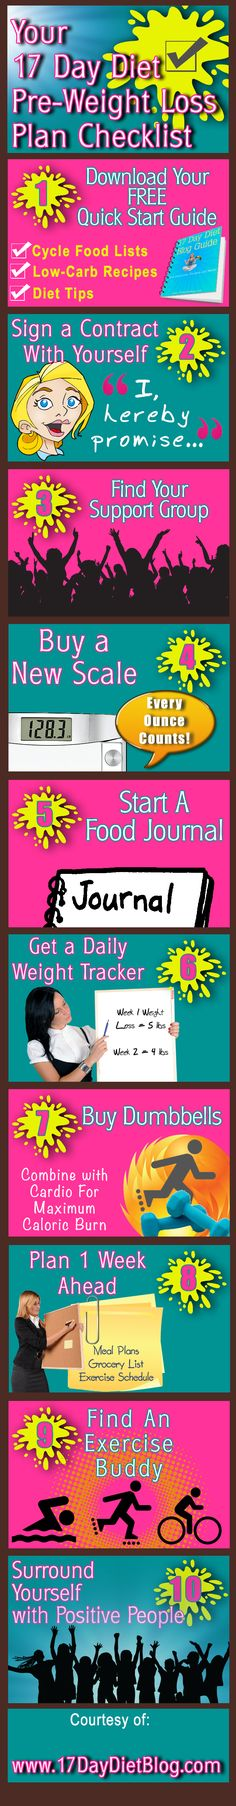 Your 17 Day Diet Pre-Weight Loss Plan Checklist Just in Time for the New Year!  Go here for your FREE checklist DOWNLOAD: http://www.17daydietblog.com/your-17-day-diet-pre-weight-loss-plan-checklist/ #17DayDiet #NewYearWeightLossGoal